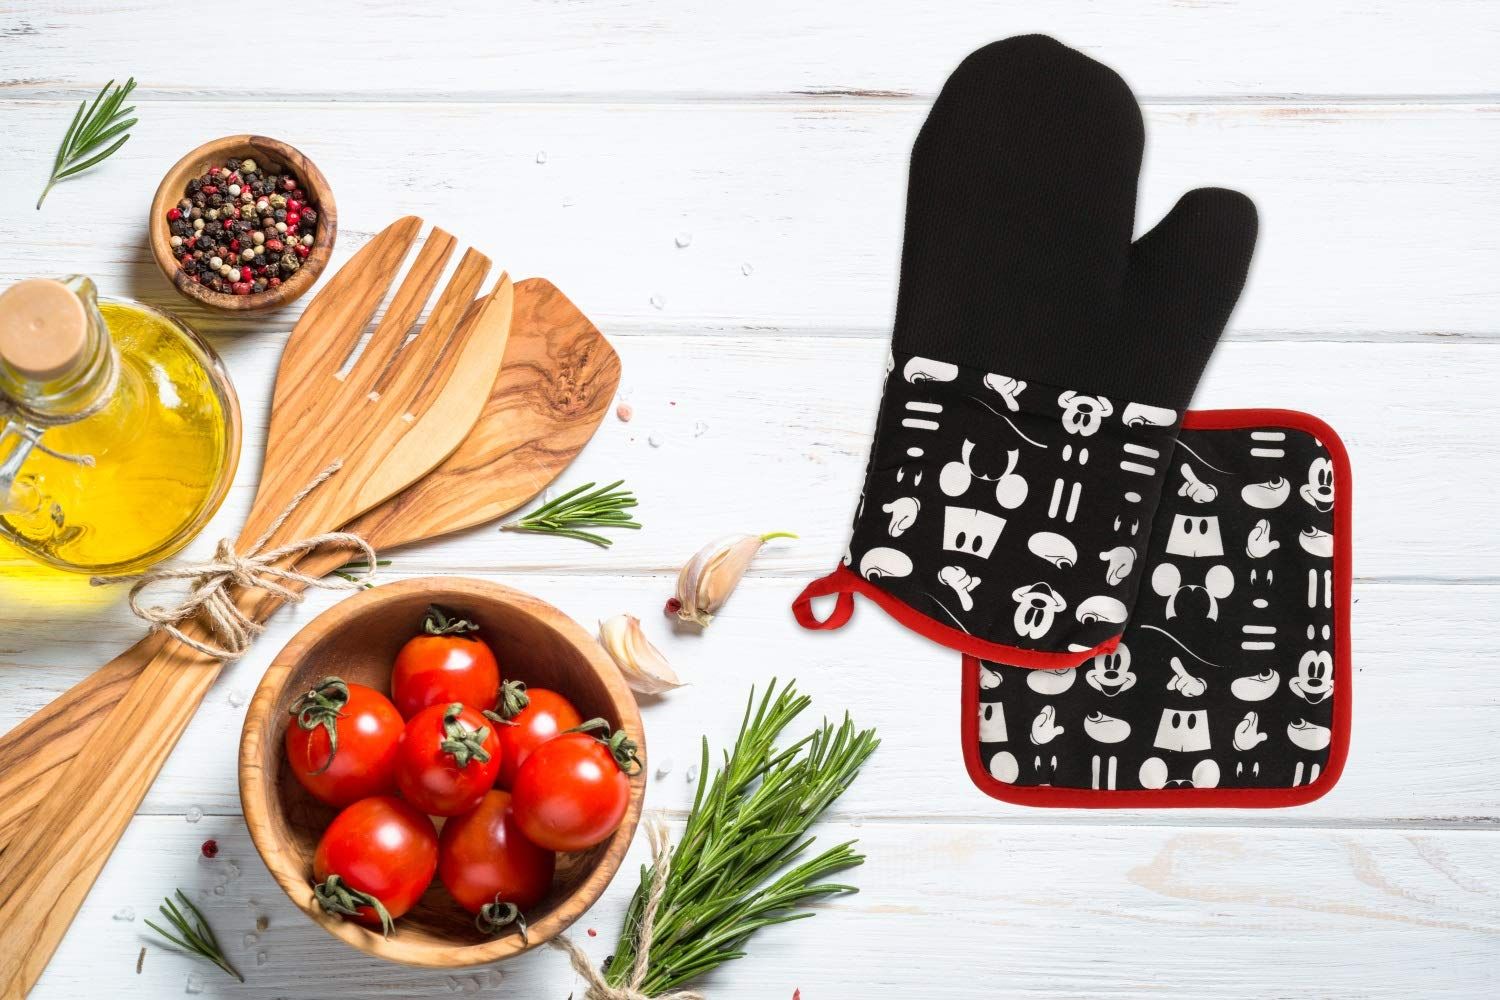 """Gray Bake Safe w//Disney Cotton Potholders w//Pocket Heat Resistant up to 500 Degrees F 8x9/"""" Minnie Mouse Face Novelty 2pk Best Brands Neoprene for Easy Gripping"""